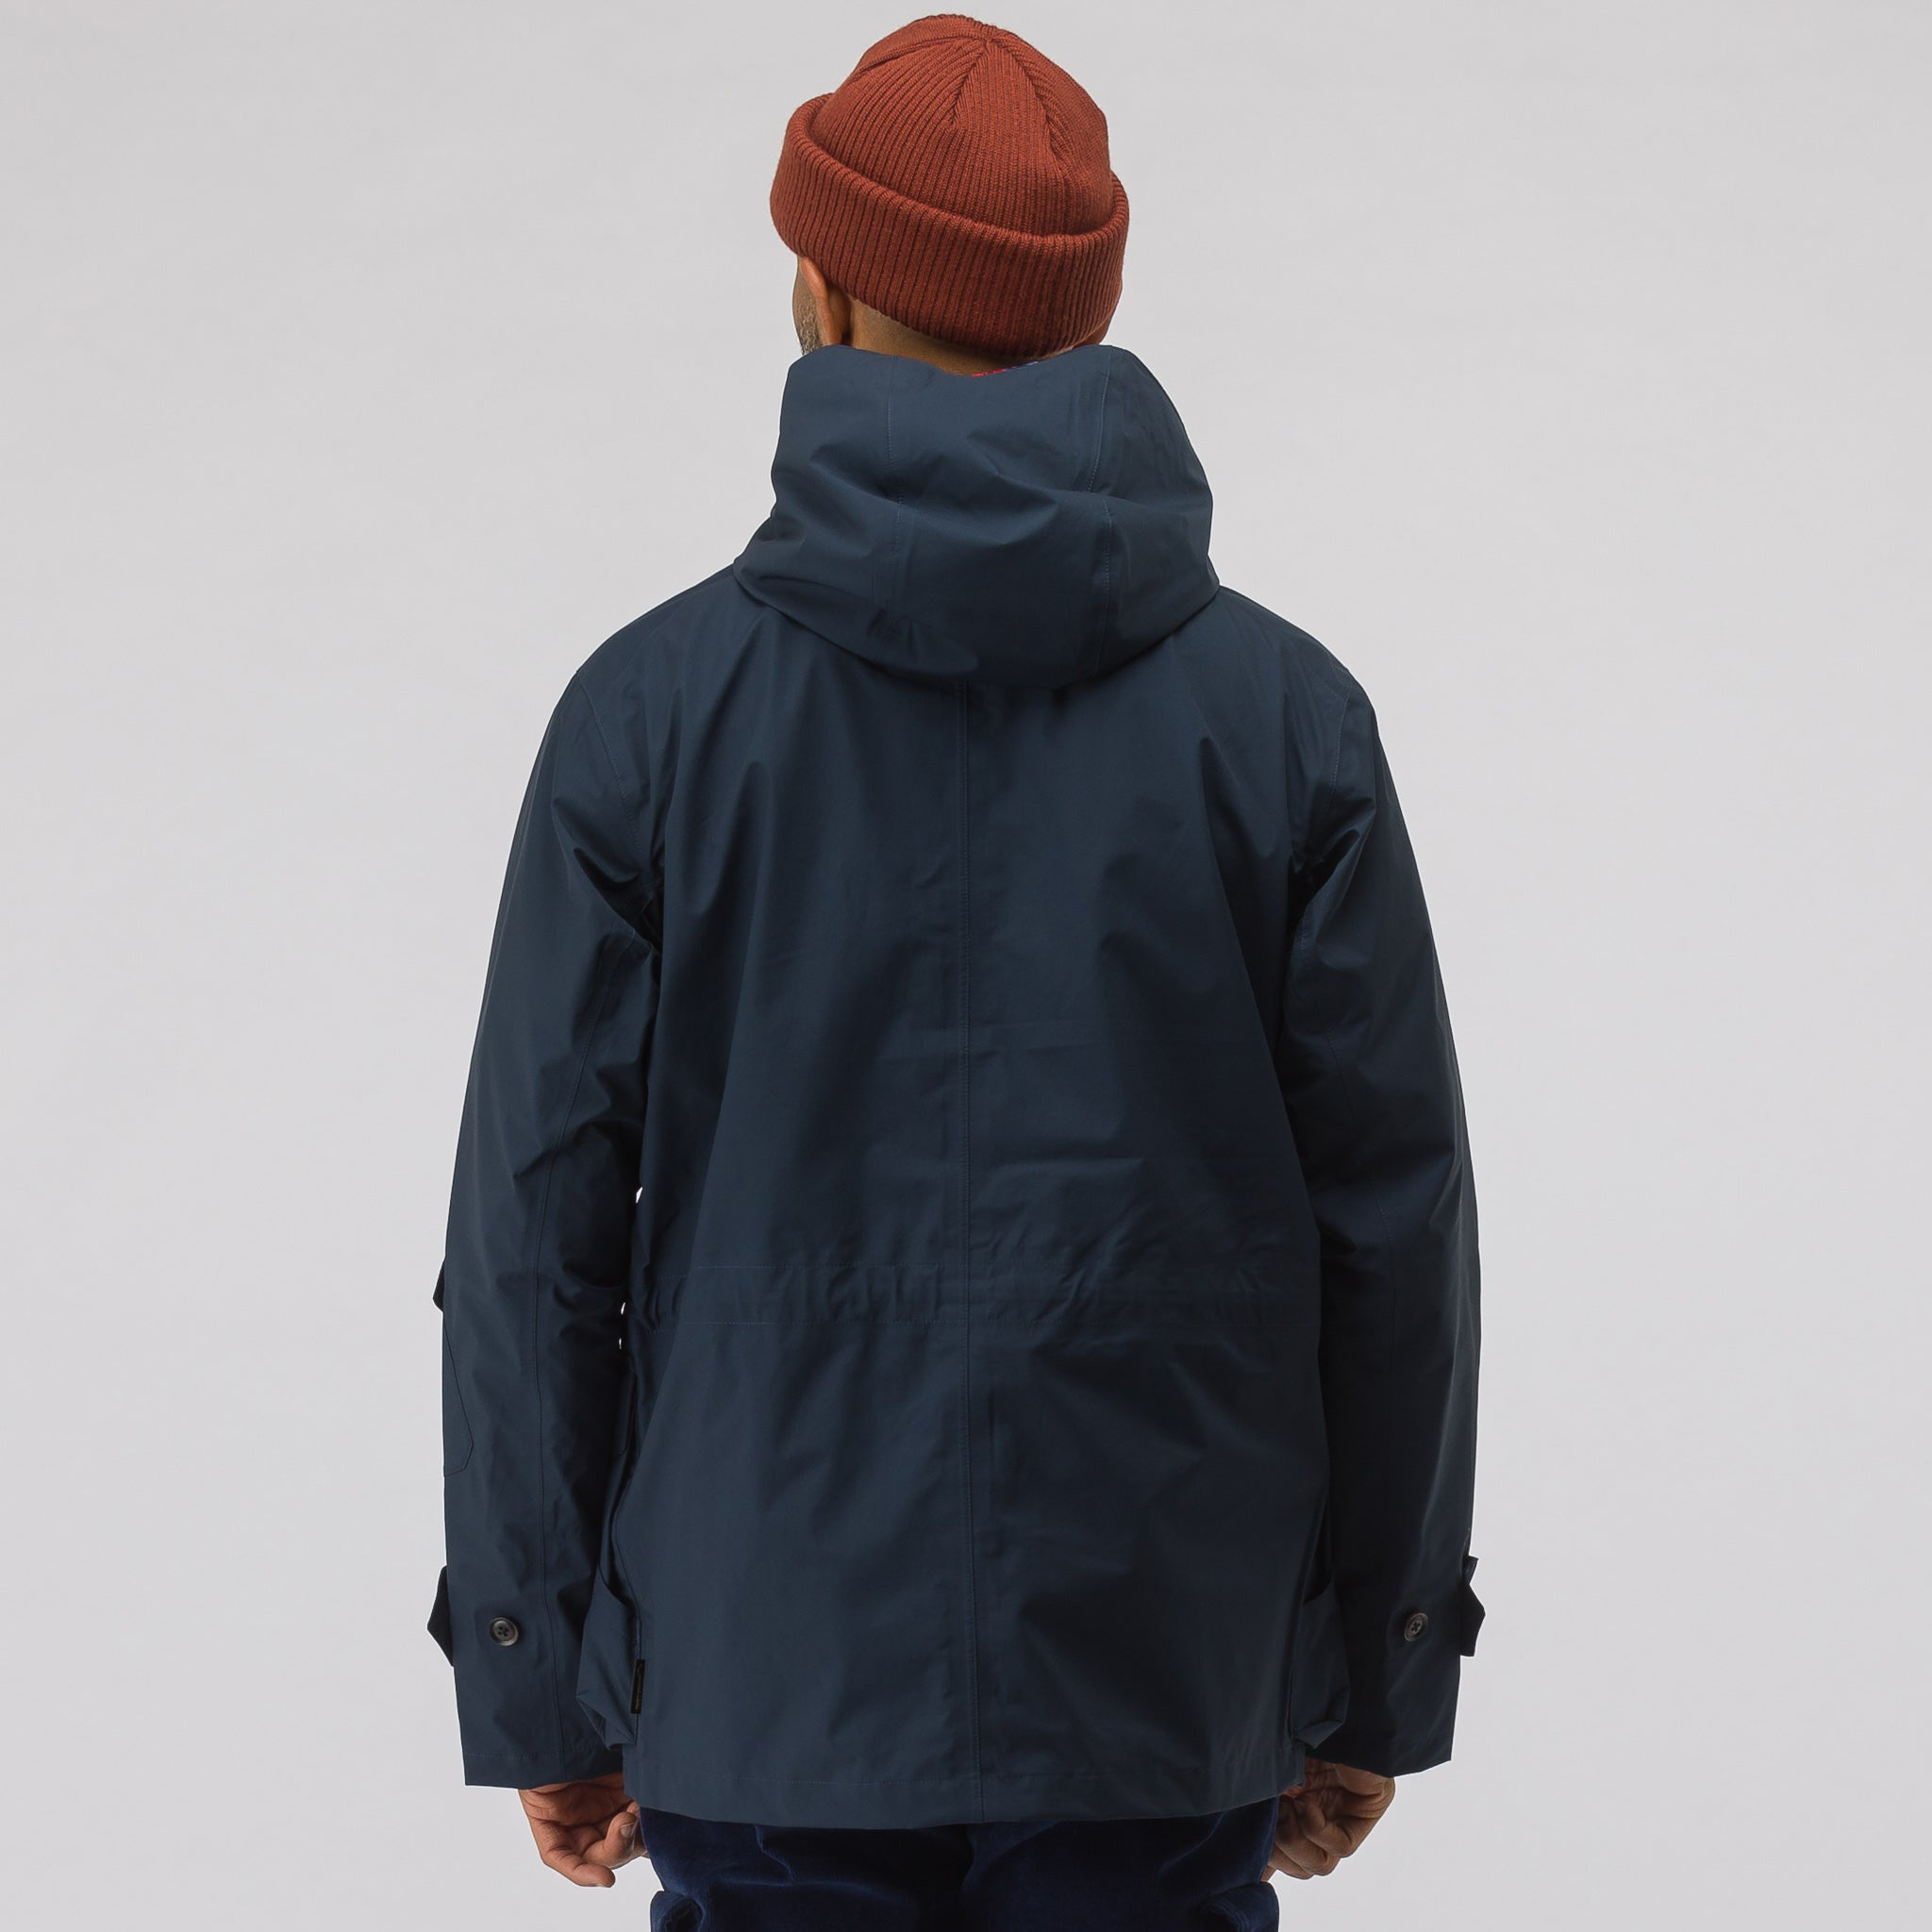 x nanamica GORE-TEX® Cruiser Jacket in Navy